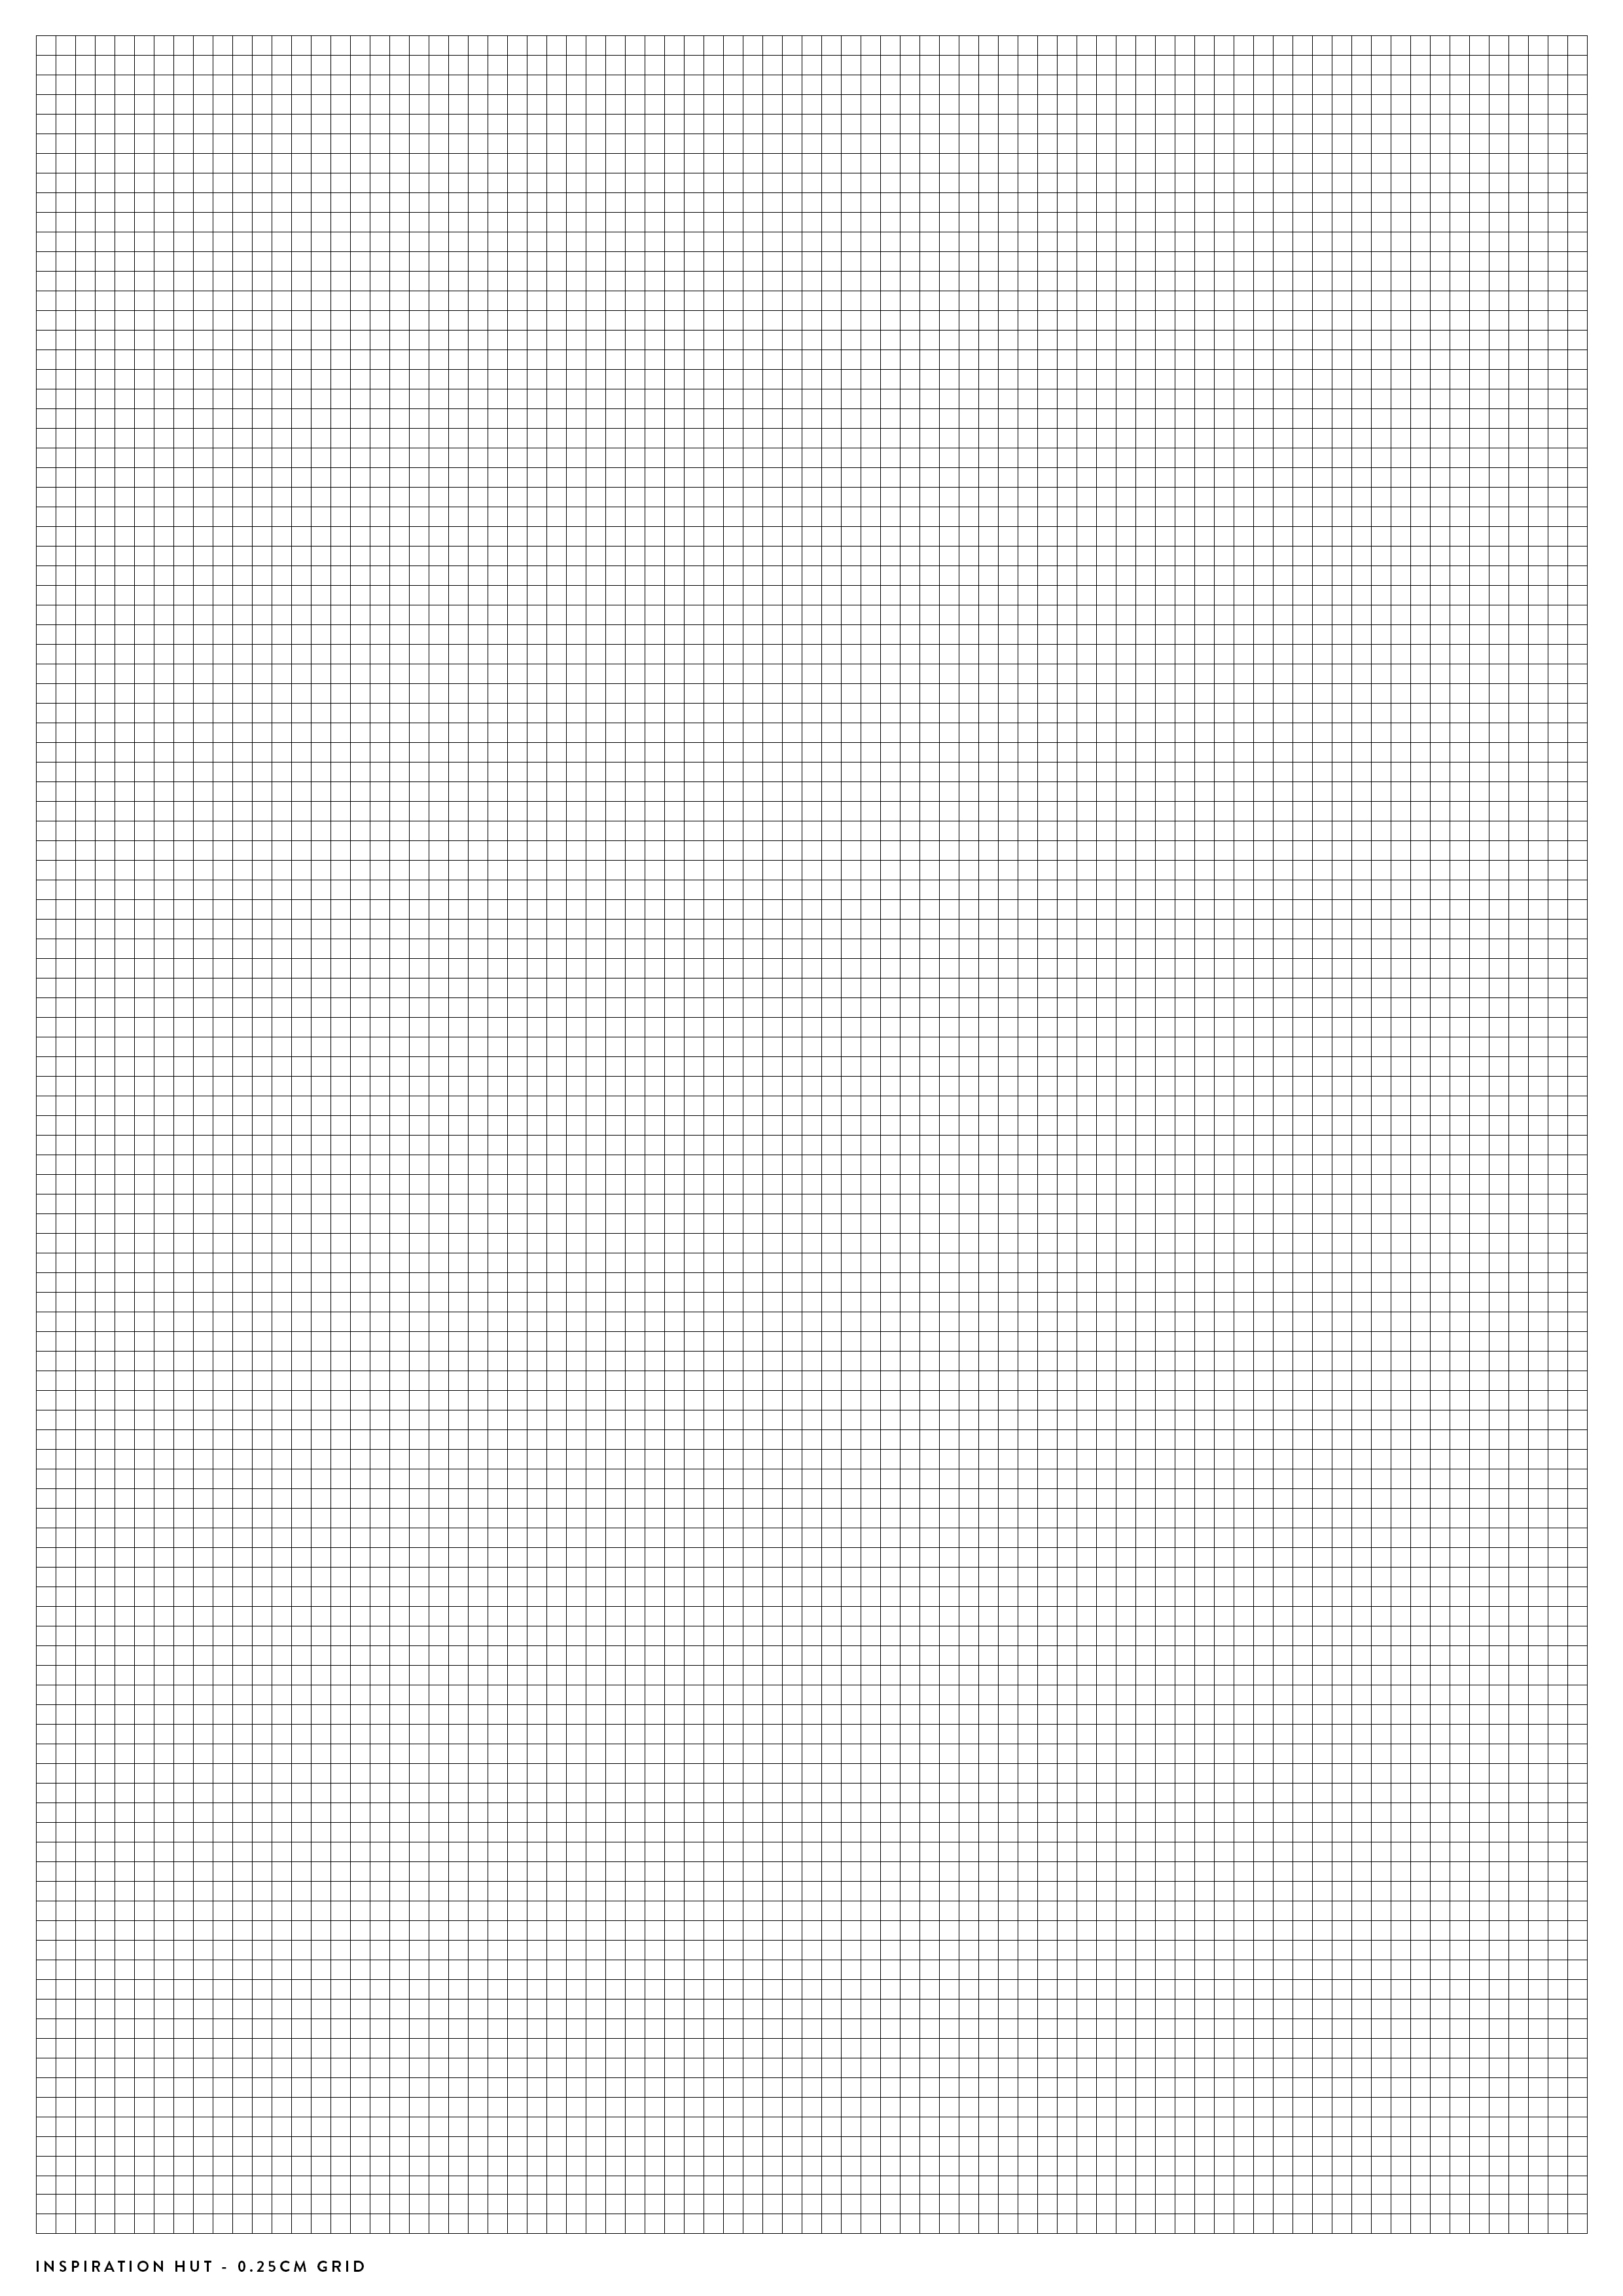 graph paper png